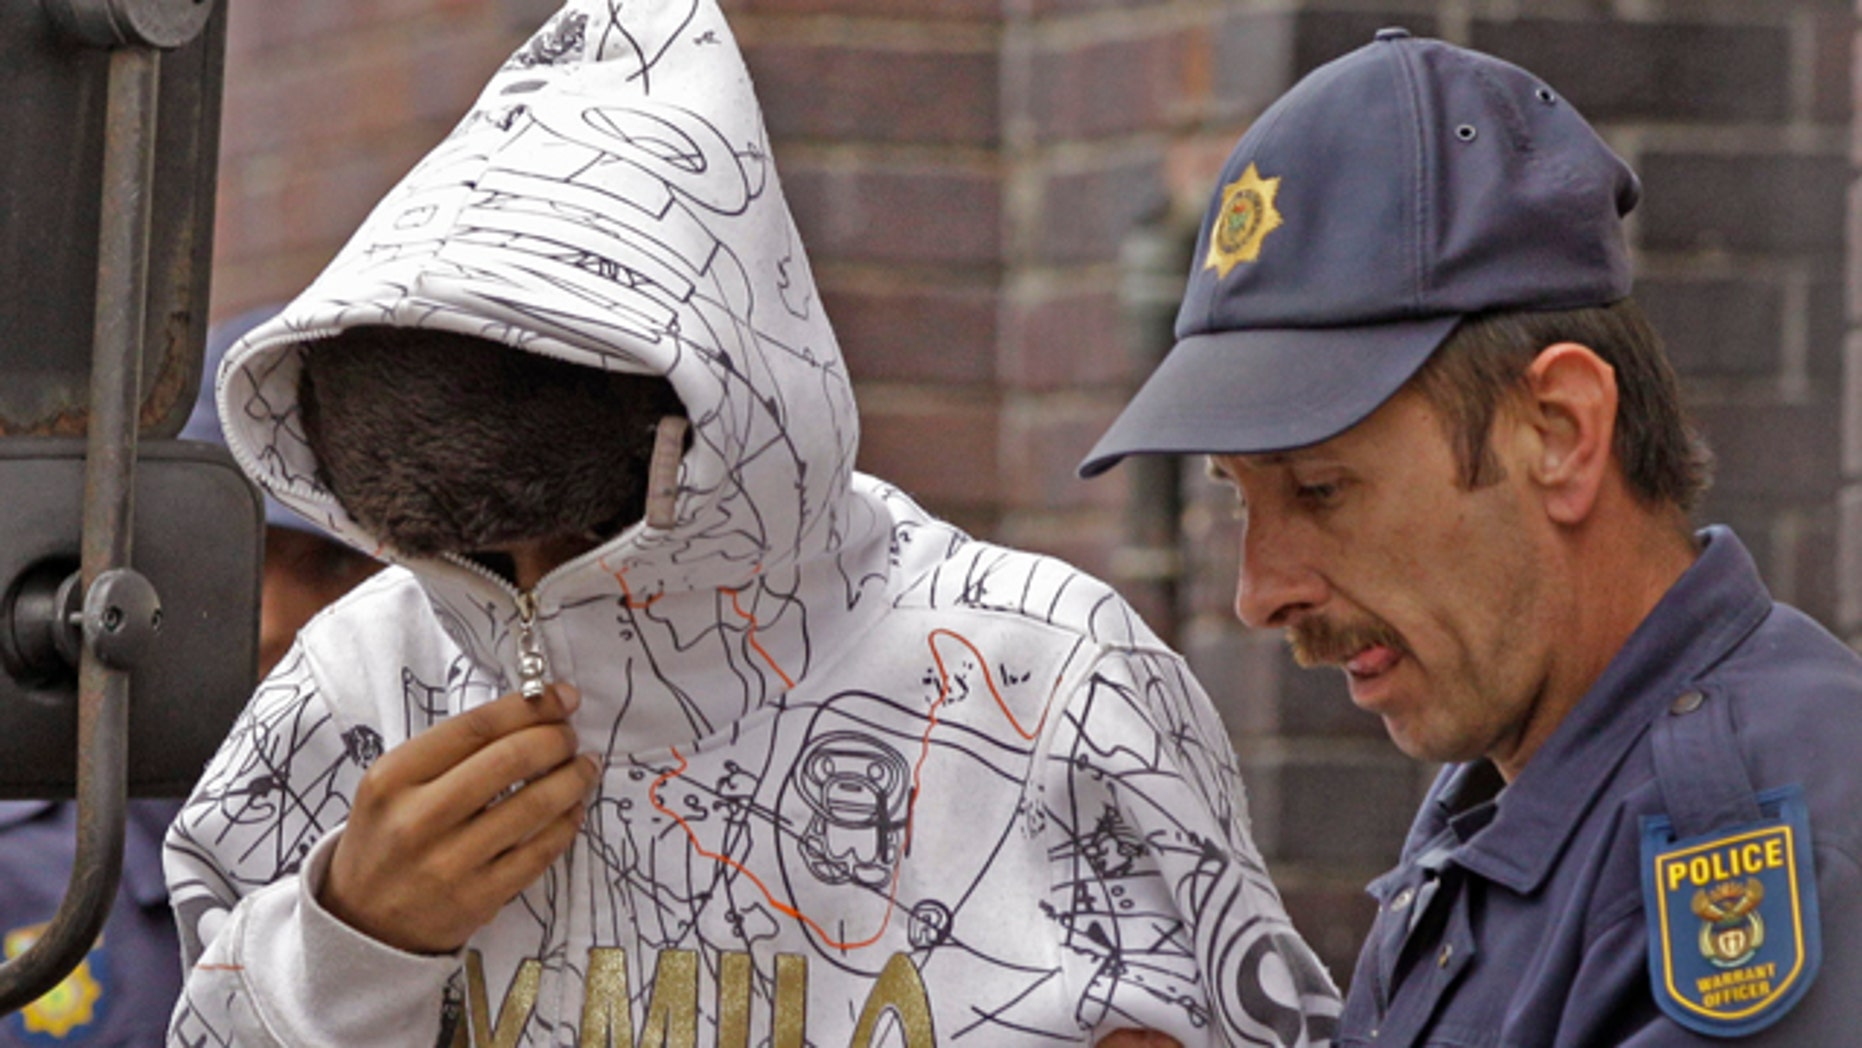 South African Xolile Mngeni, left, accused of taking part in the shooting death of Swedish Anni Dewani is led out of the court building by a police man at Cape Town, South Africa, Tuesday, Sept 20, 2011. Two South Africans allegedly hired by a British newlywed to kill his Swedish bride on their honeymoon in Cape Town will have their case heard by a higher court, a judge ruled Tuesday. At a brief hearing at a magistrate's court, Mziwamadoda Qwabe, 25, and Xolile Mngeni, 23 were ordered to appear before the High Court on Feb. 10. (AP Photo/Schalk van Zuydam)